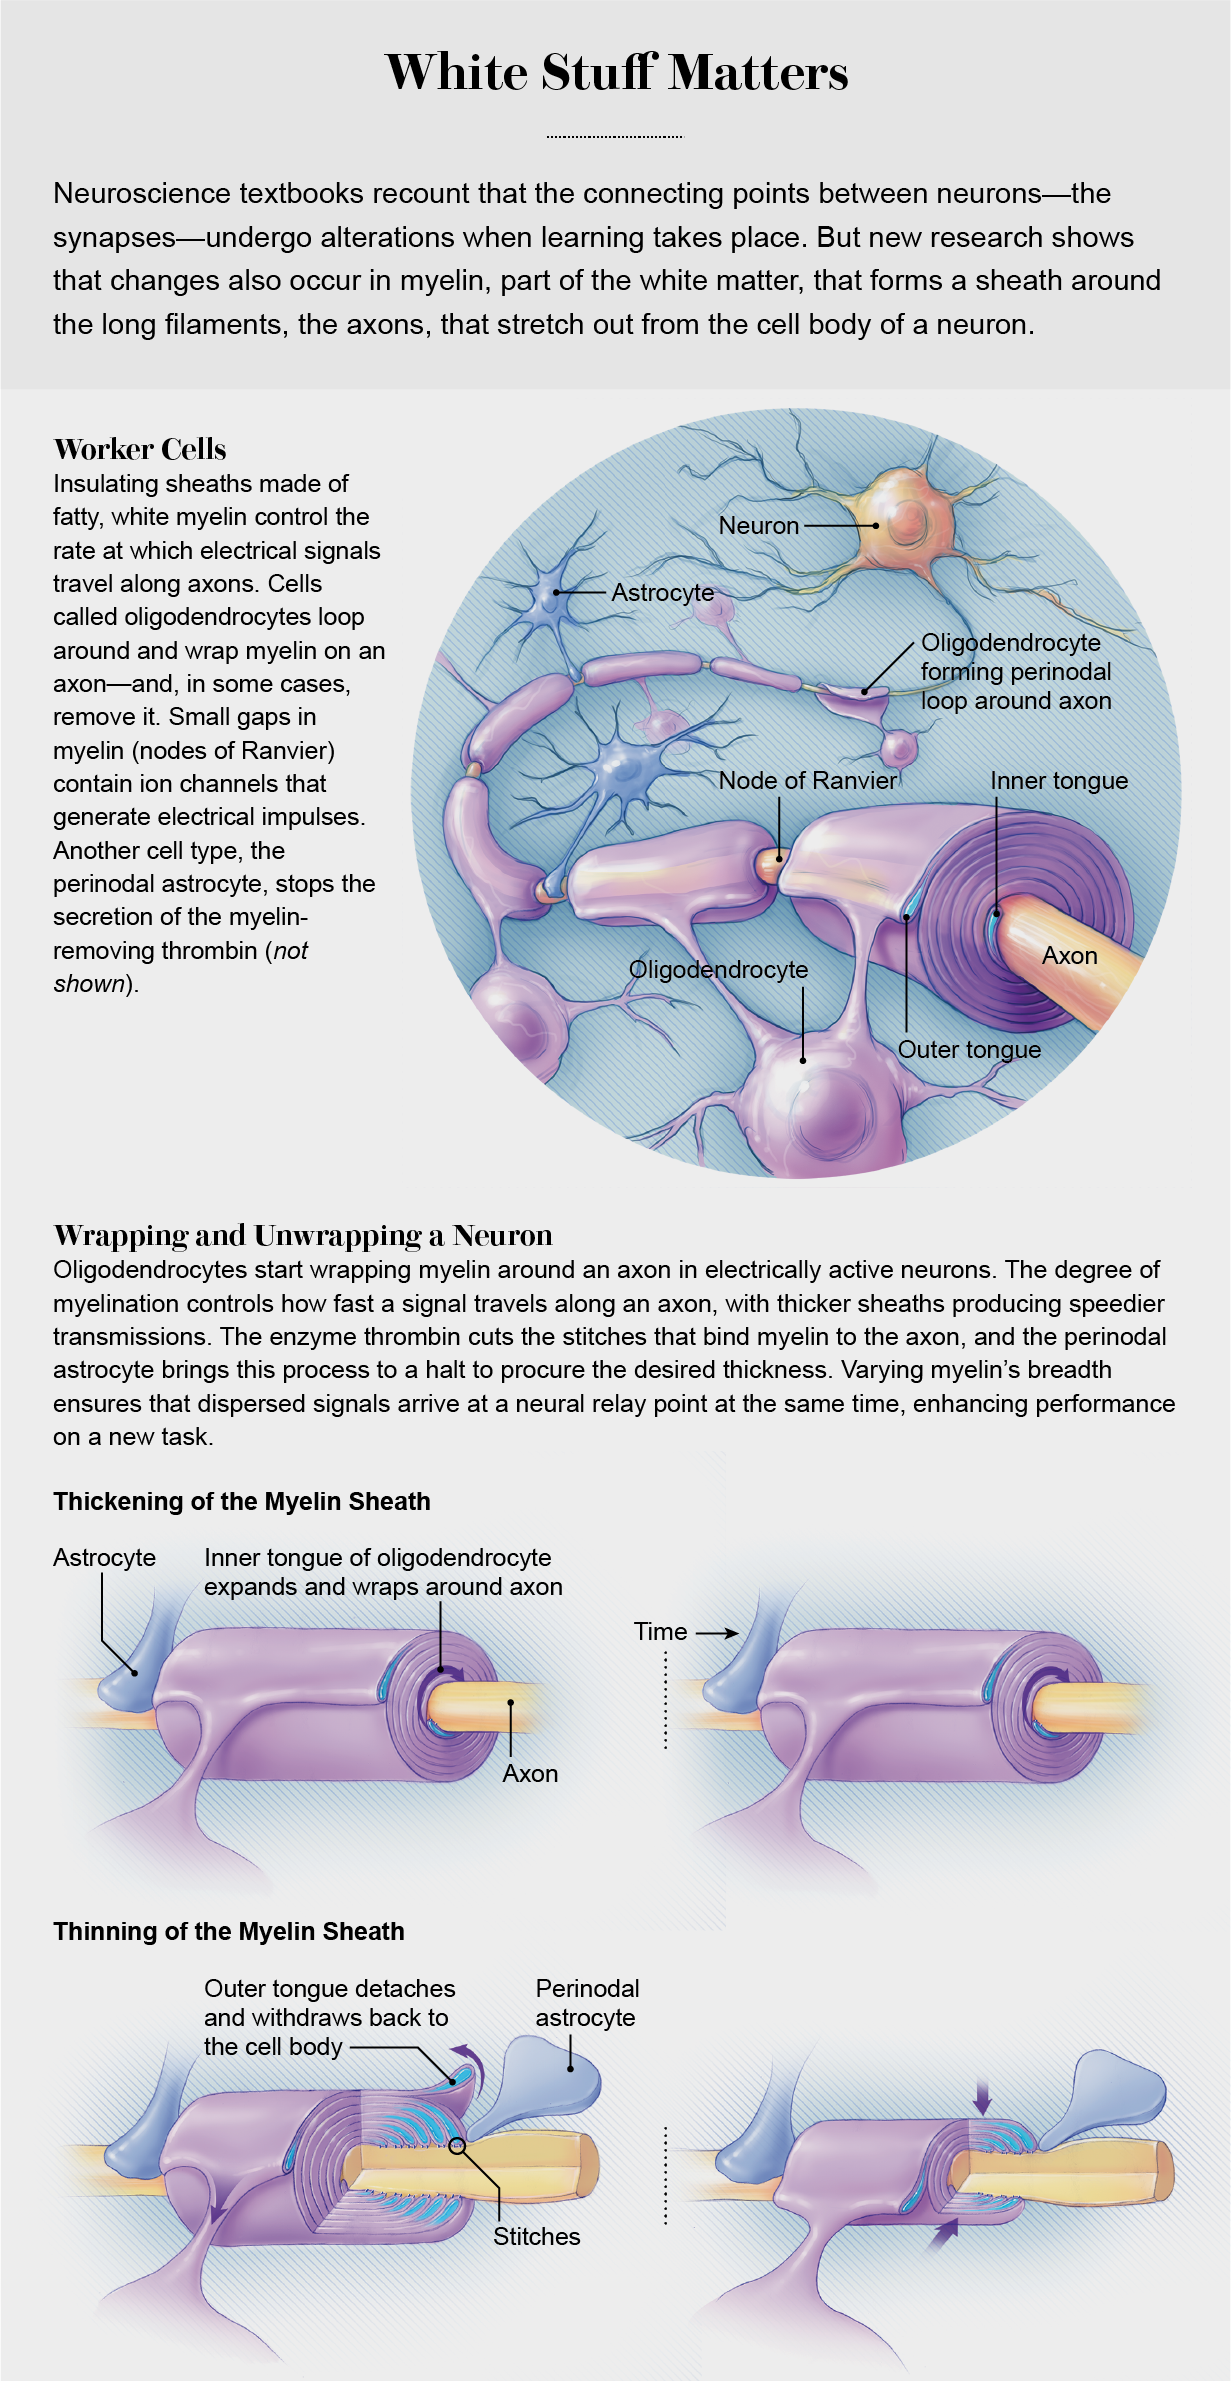 Illustration demonstrates how oligodendrocytes wrap around the axon of brain neurons, forming a dynamic sheath that can become thicker or thinner